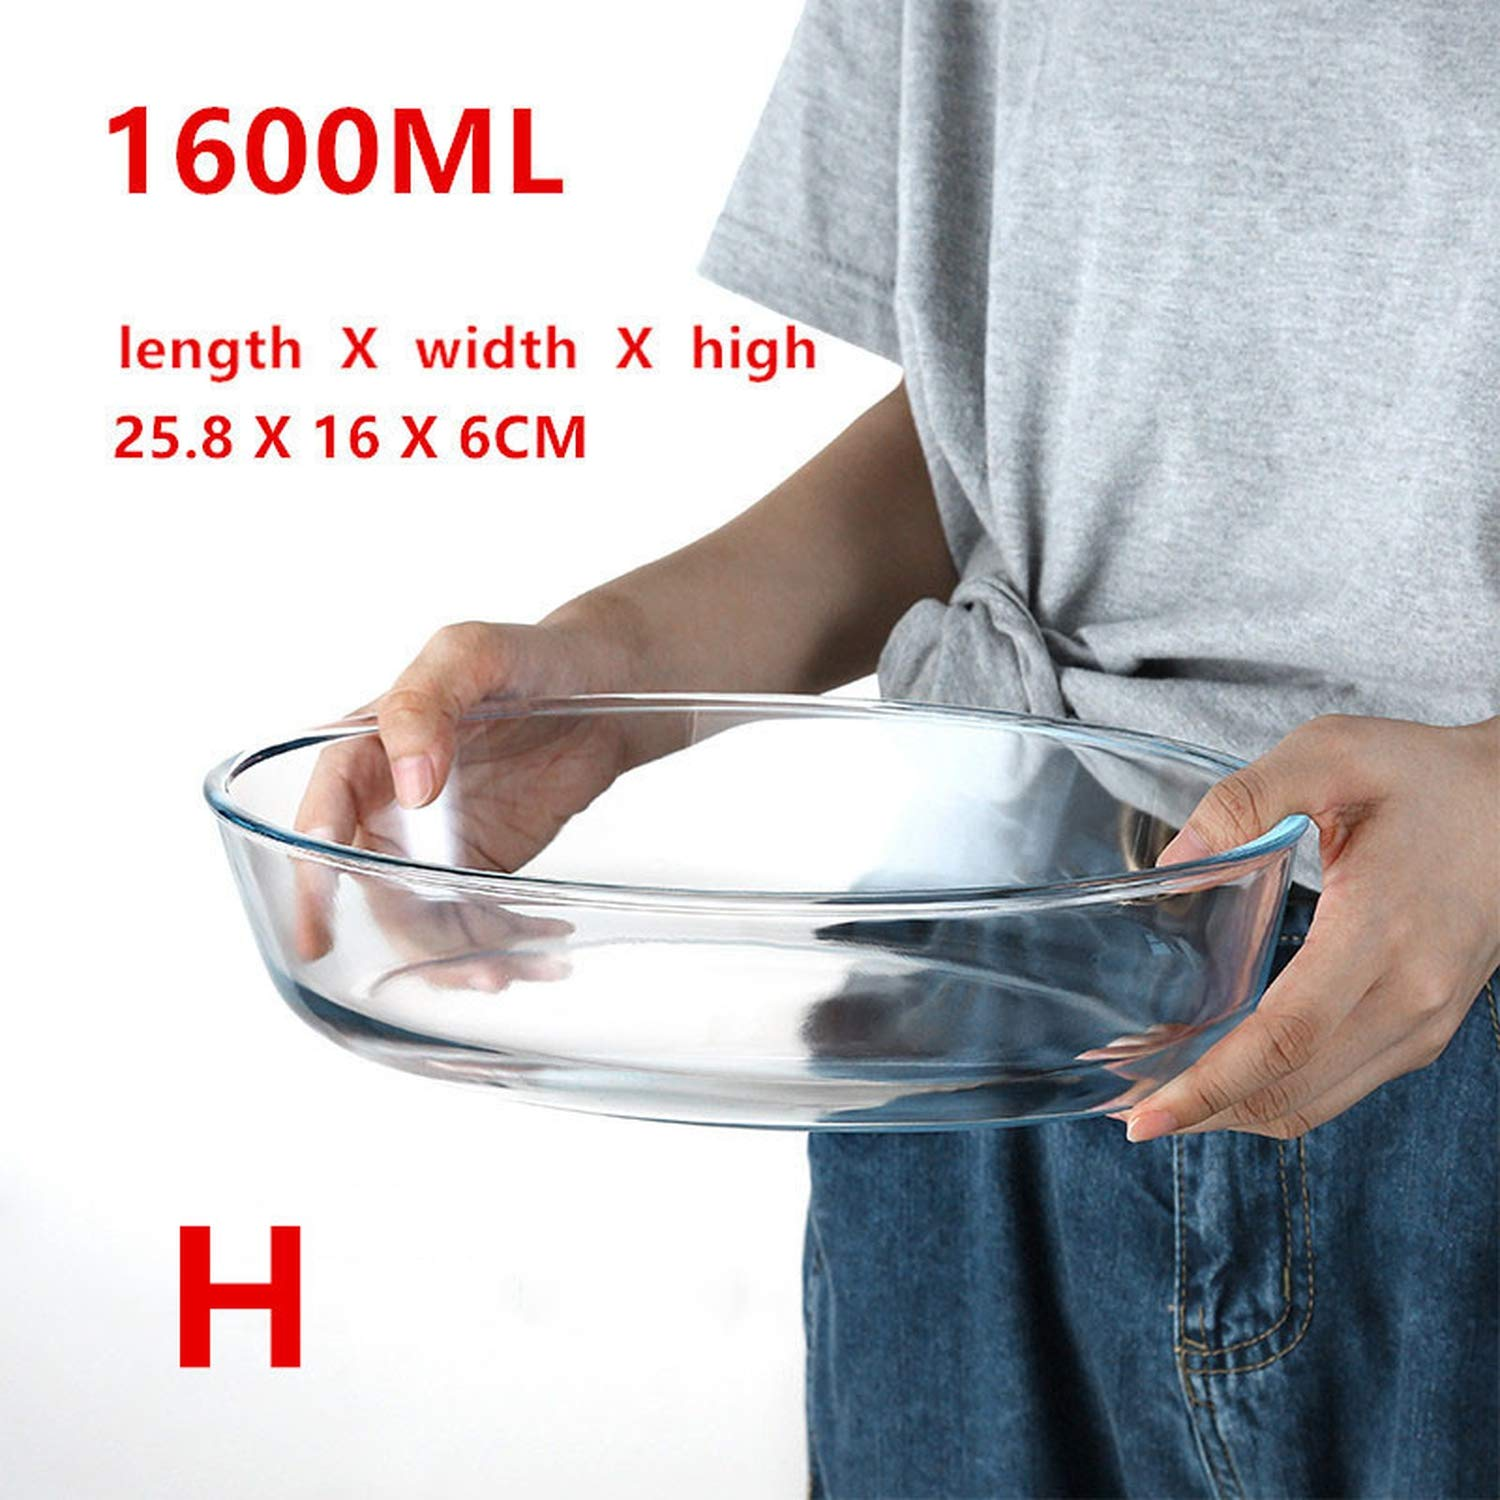 Large Capacity Clear Toughened Glass Baking Dish Pan Oven Bakeware Non Stick Kitchen Tool,H